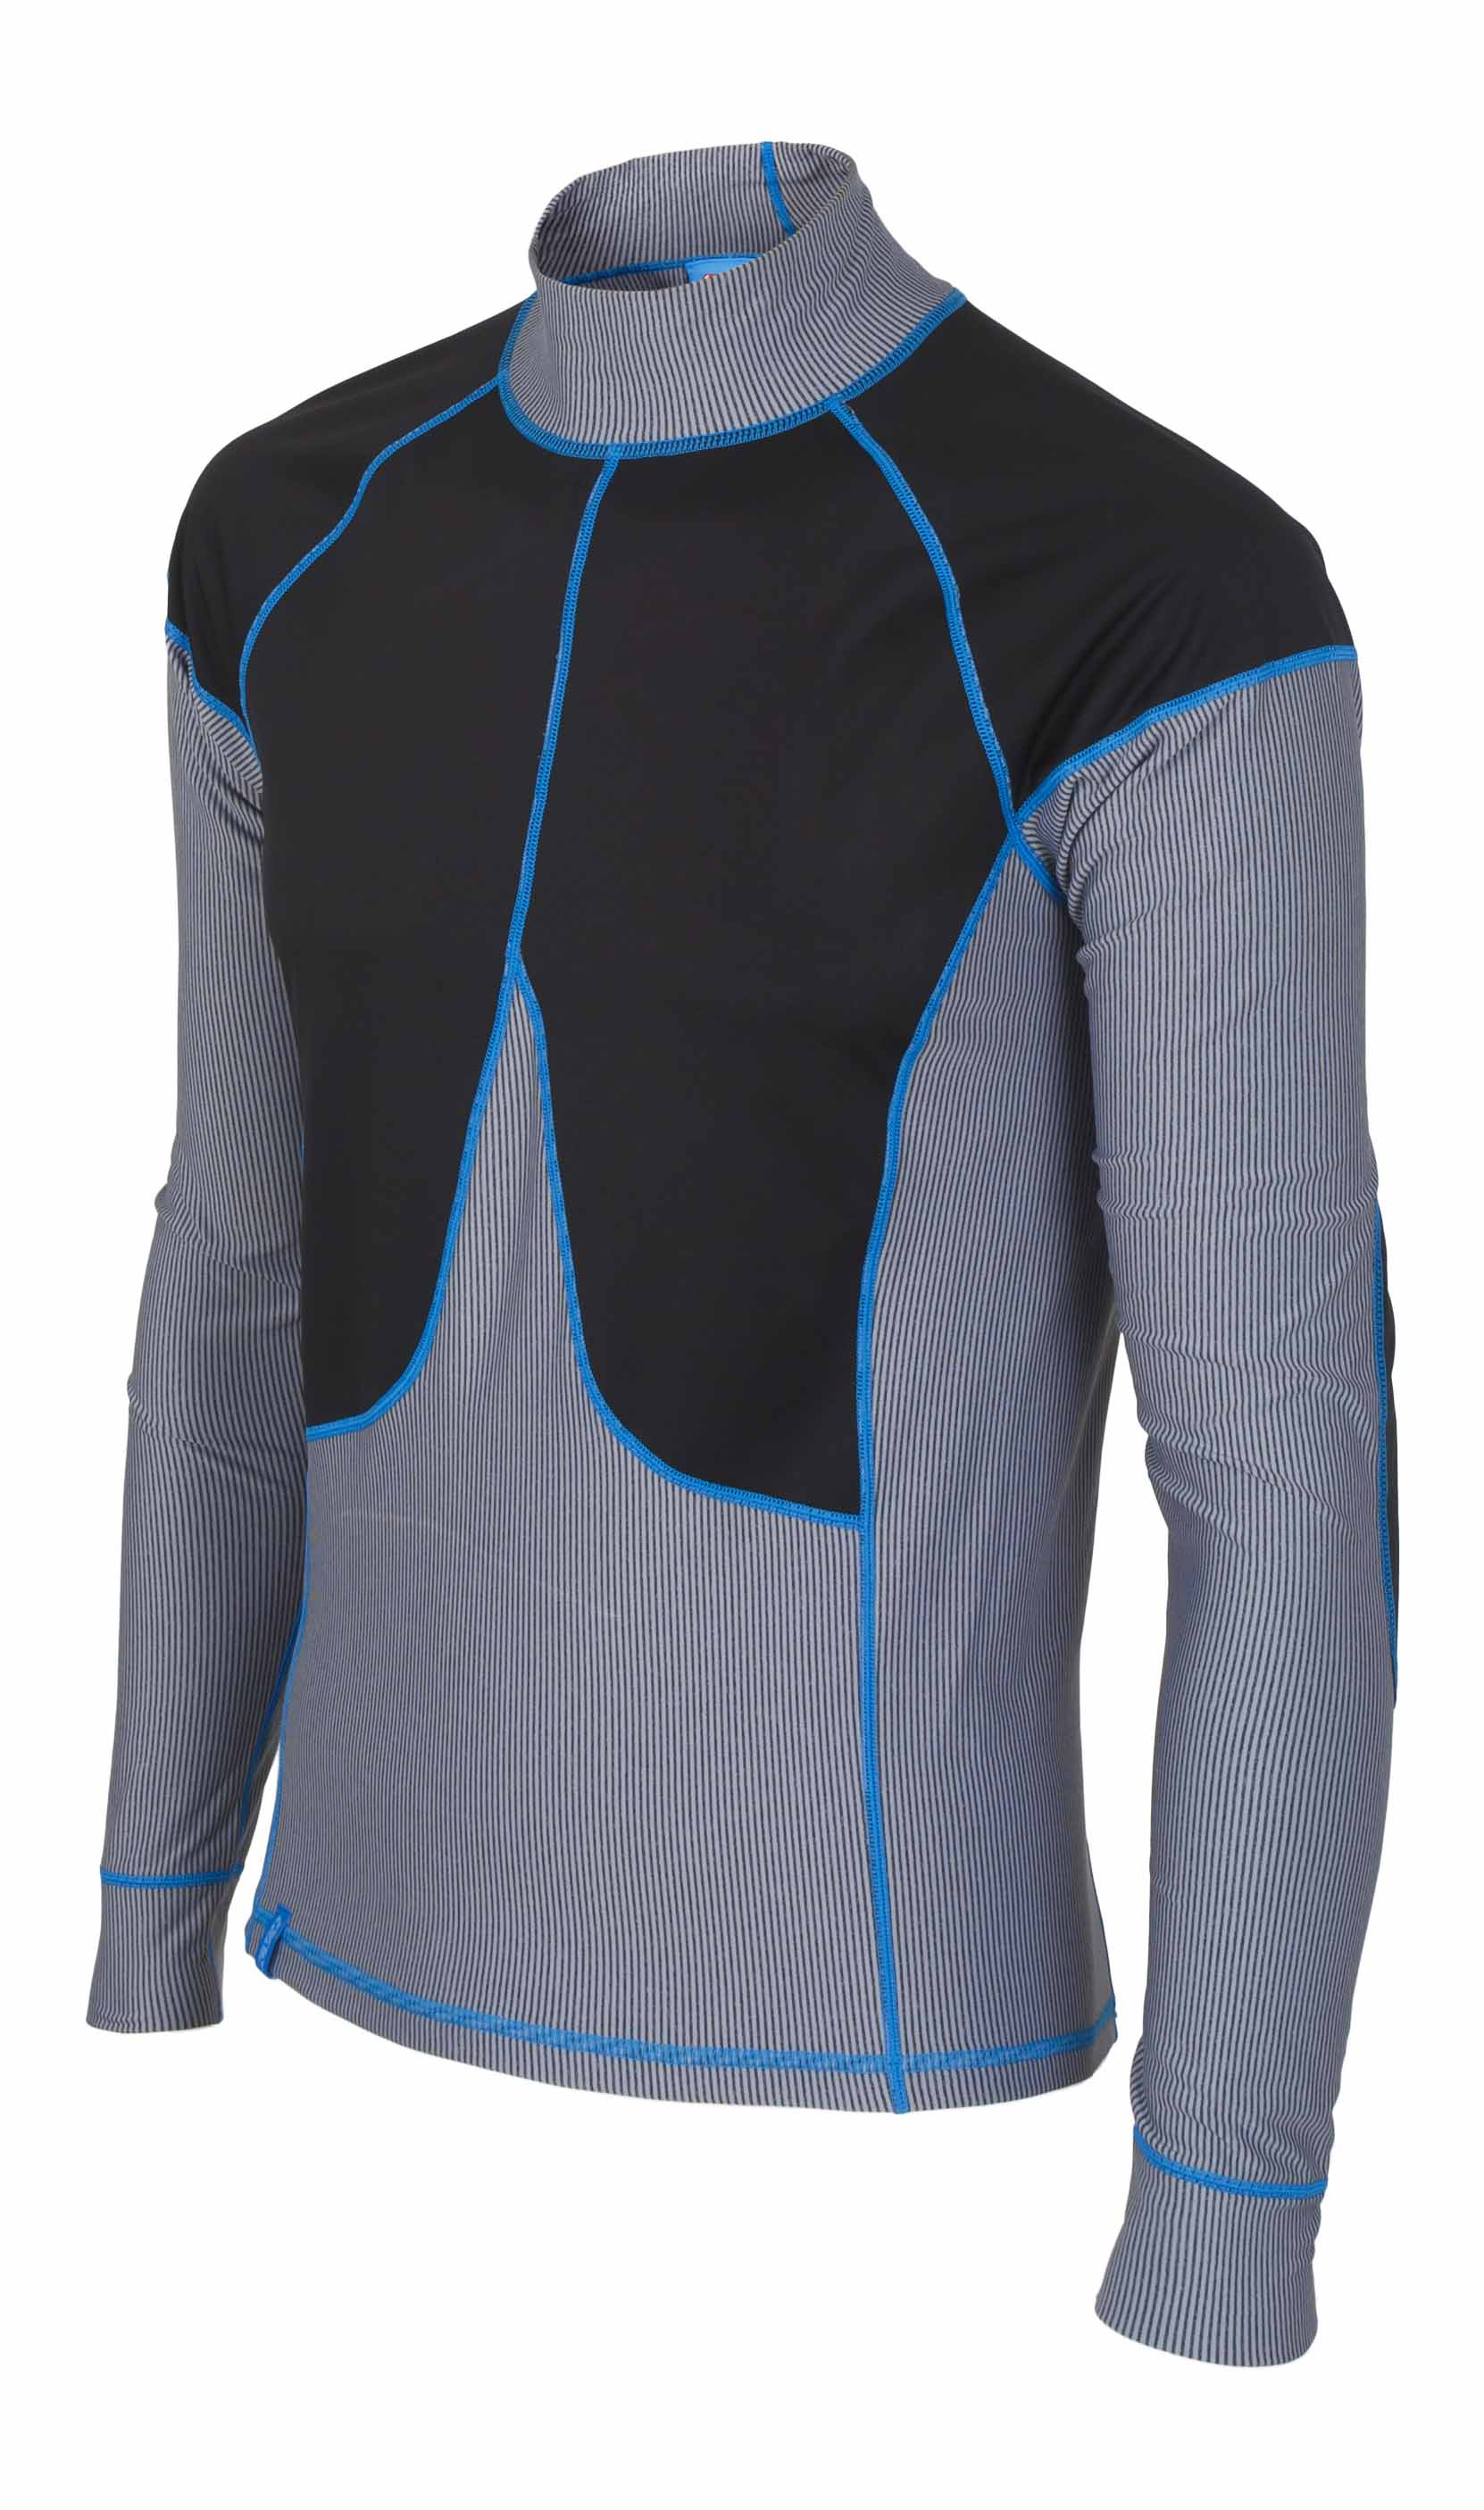 KV+ JULIER PRO WIND TECH SHIRT – grey 7U121-9